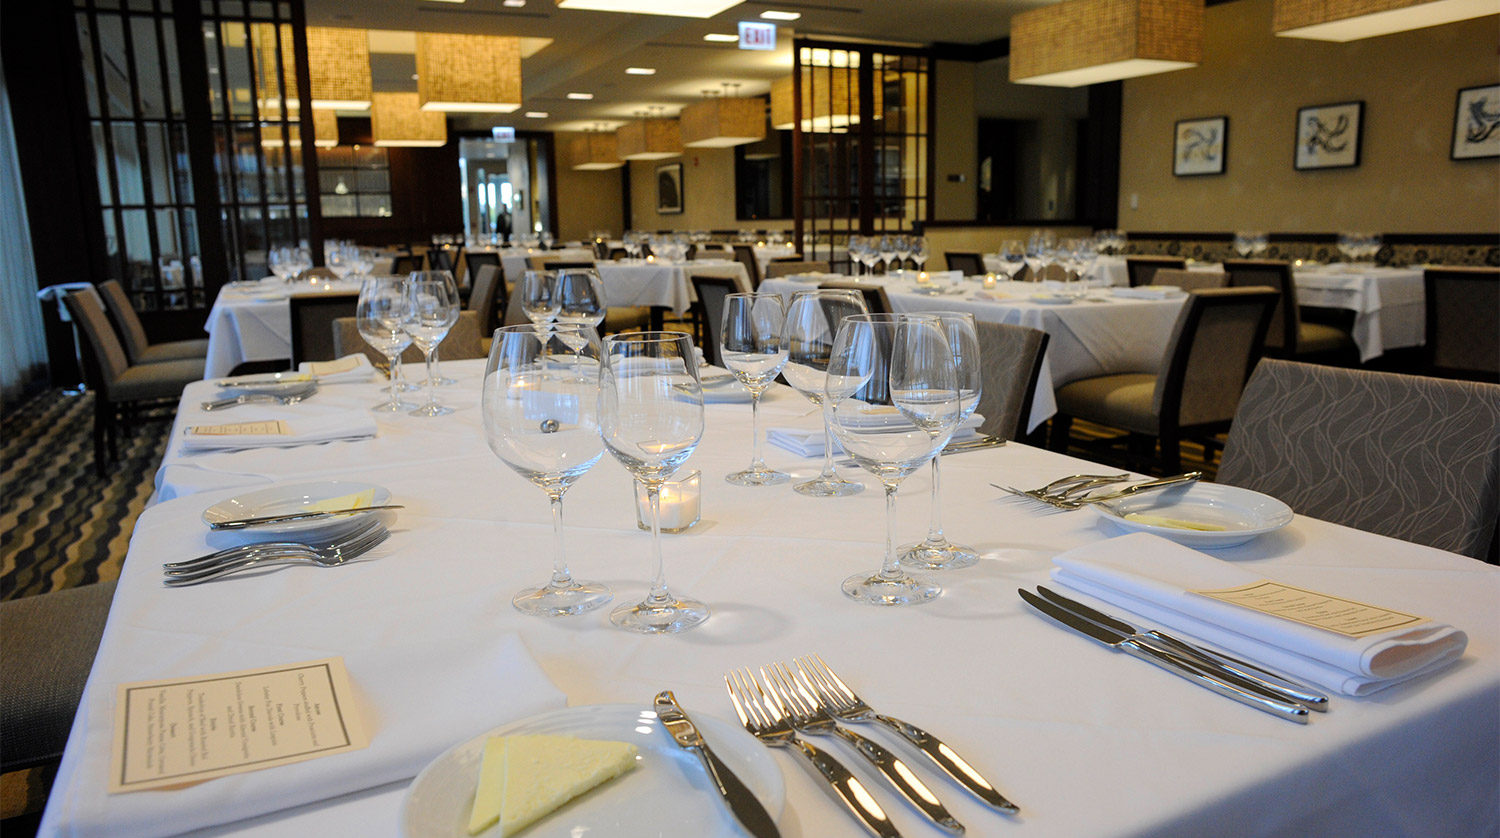 College of DuPage_ Culinary and Hospitality Center dining room